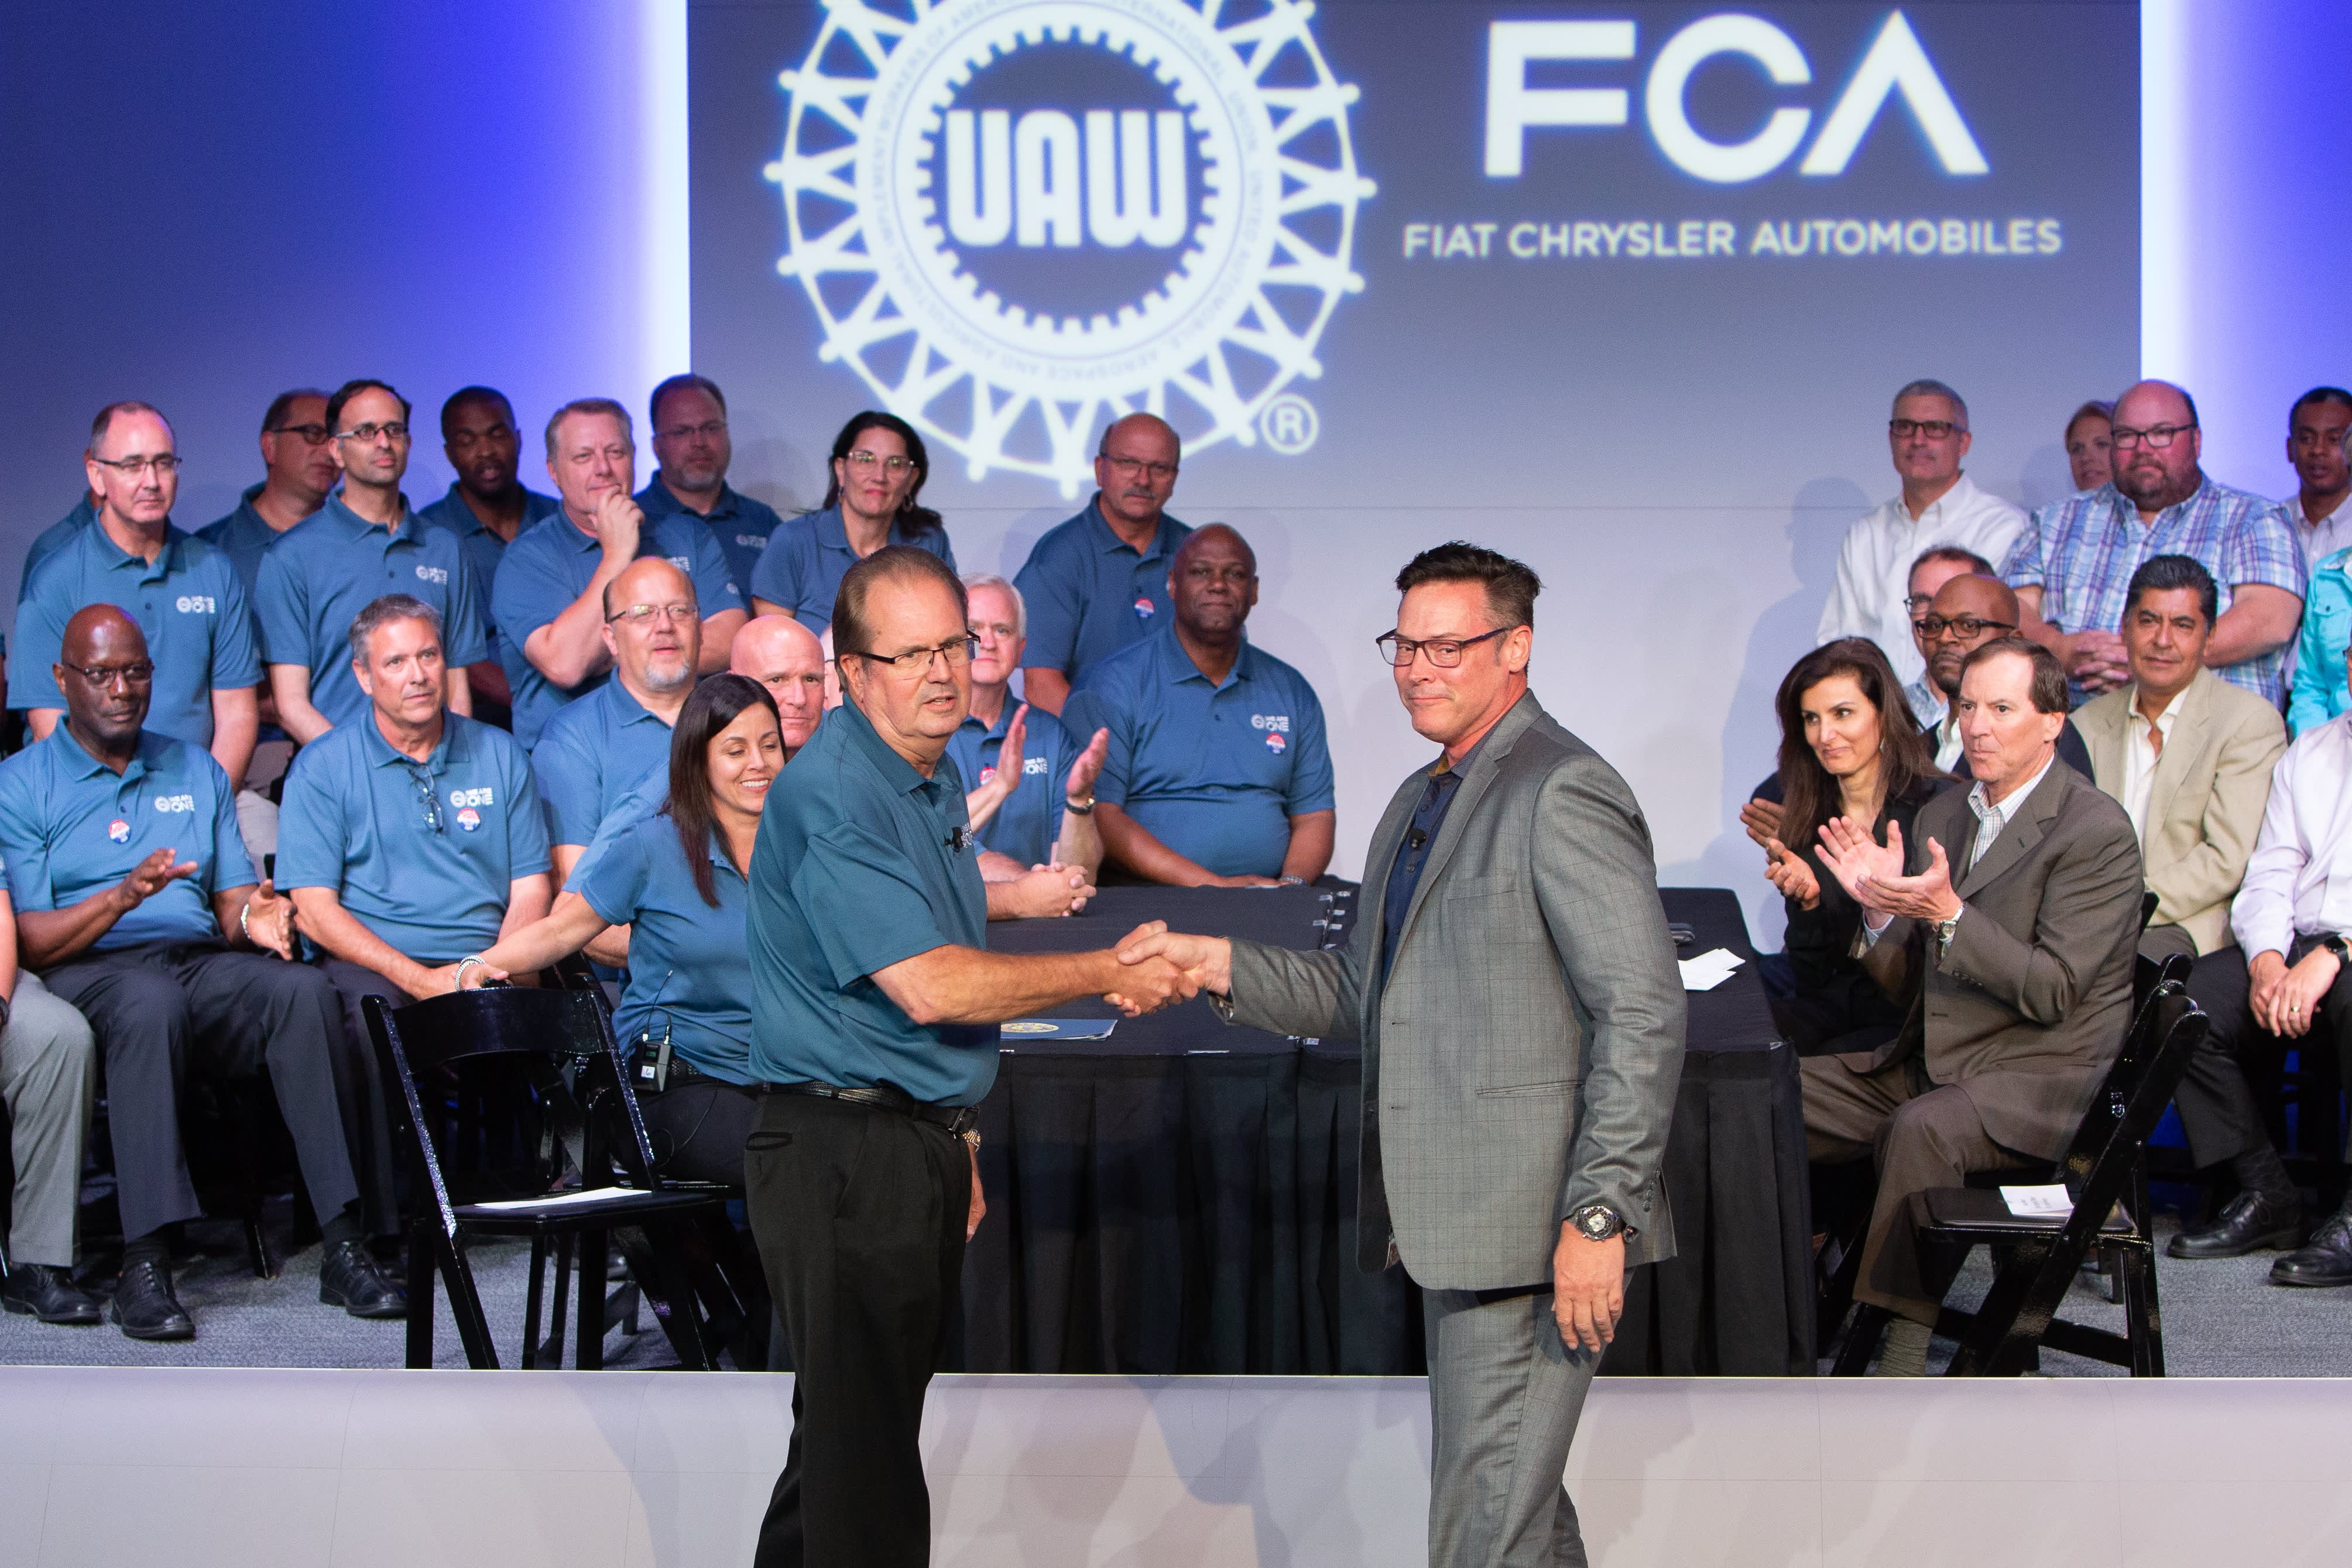 UAW approves labor deal with Fiat Chrysler, closing unprecedented talks with Big 3 Detroit automakers marked by a strike, corruption and litigation